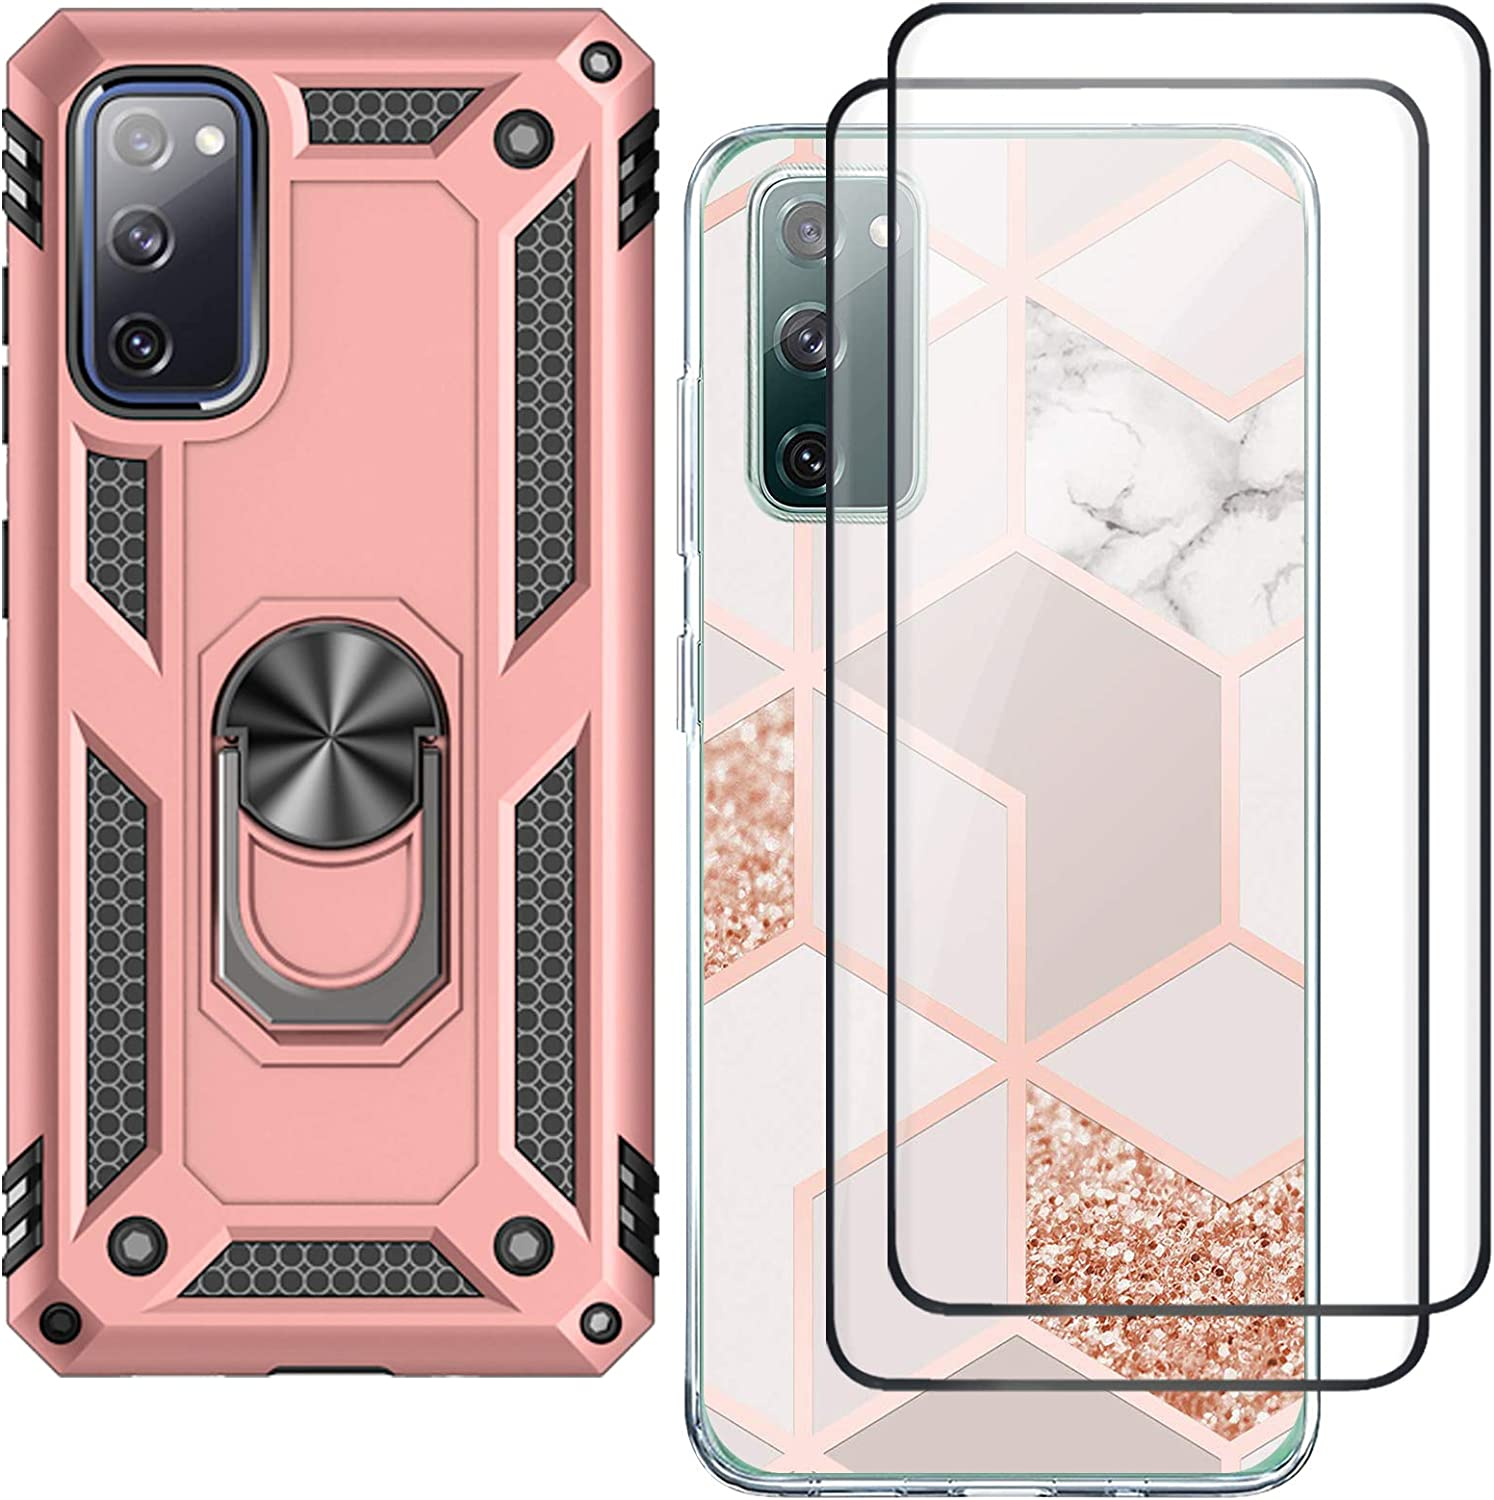 S20 FE Case with Animer and price revision Kickstand Protector Screen f Samsung for Super sale